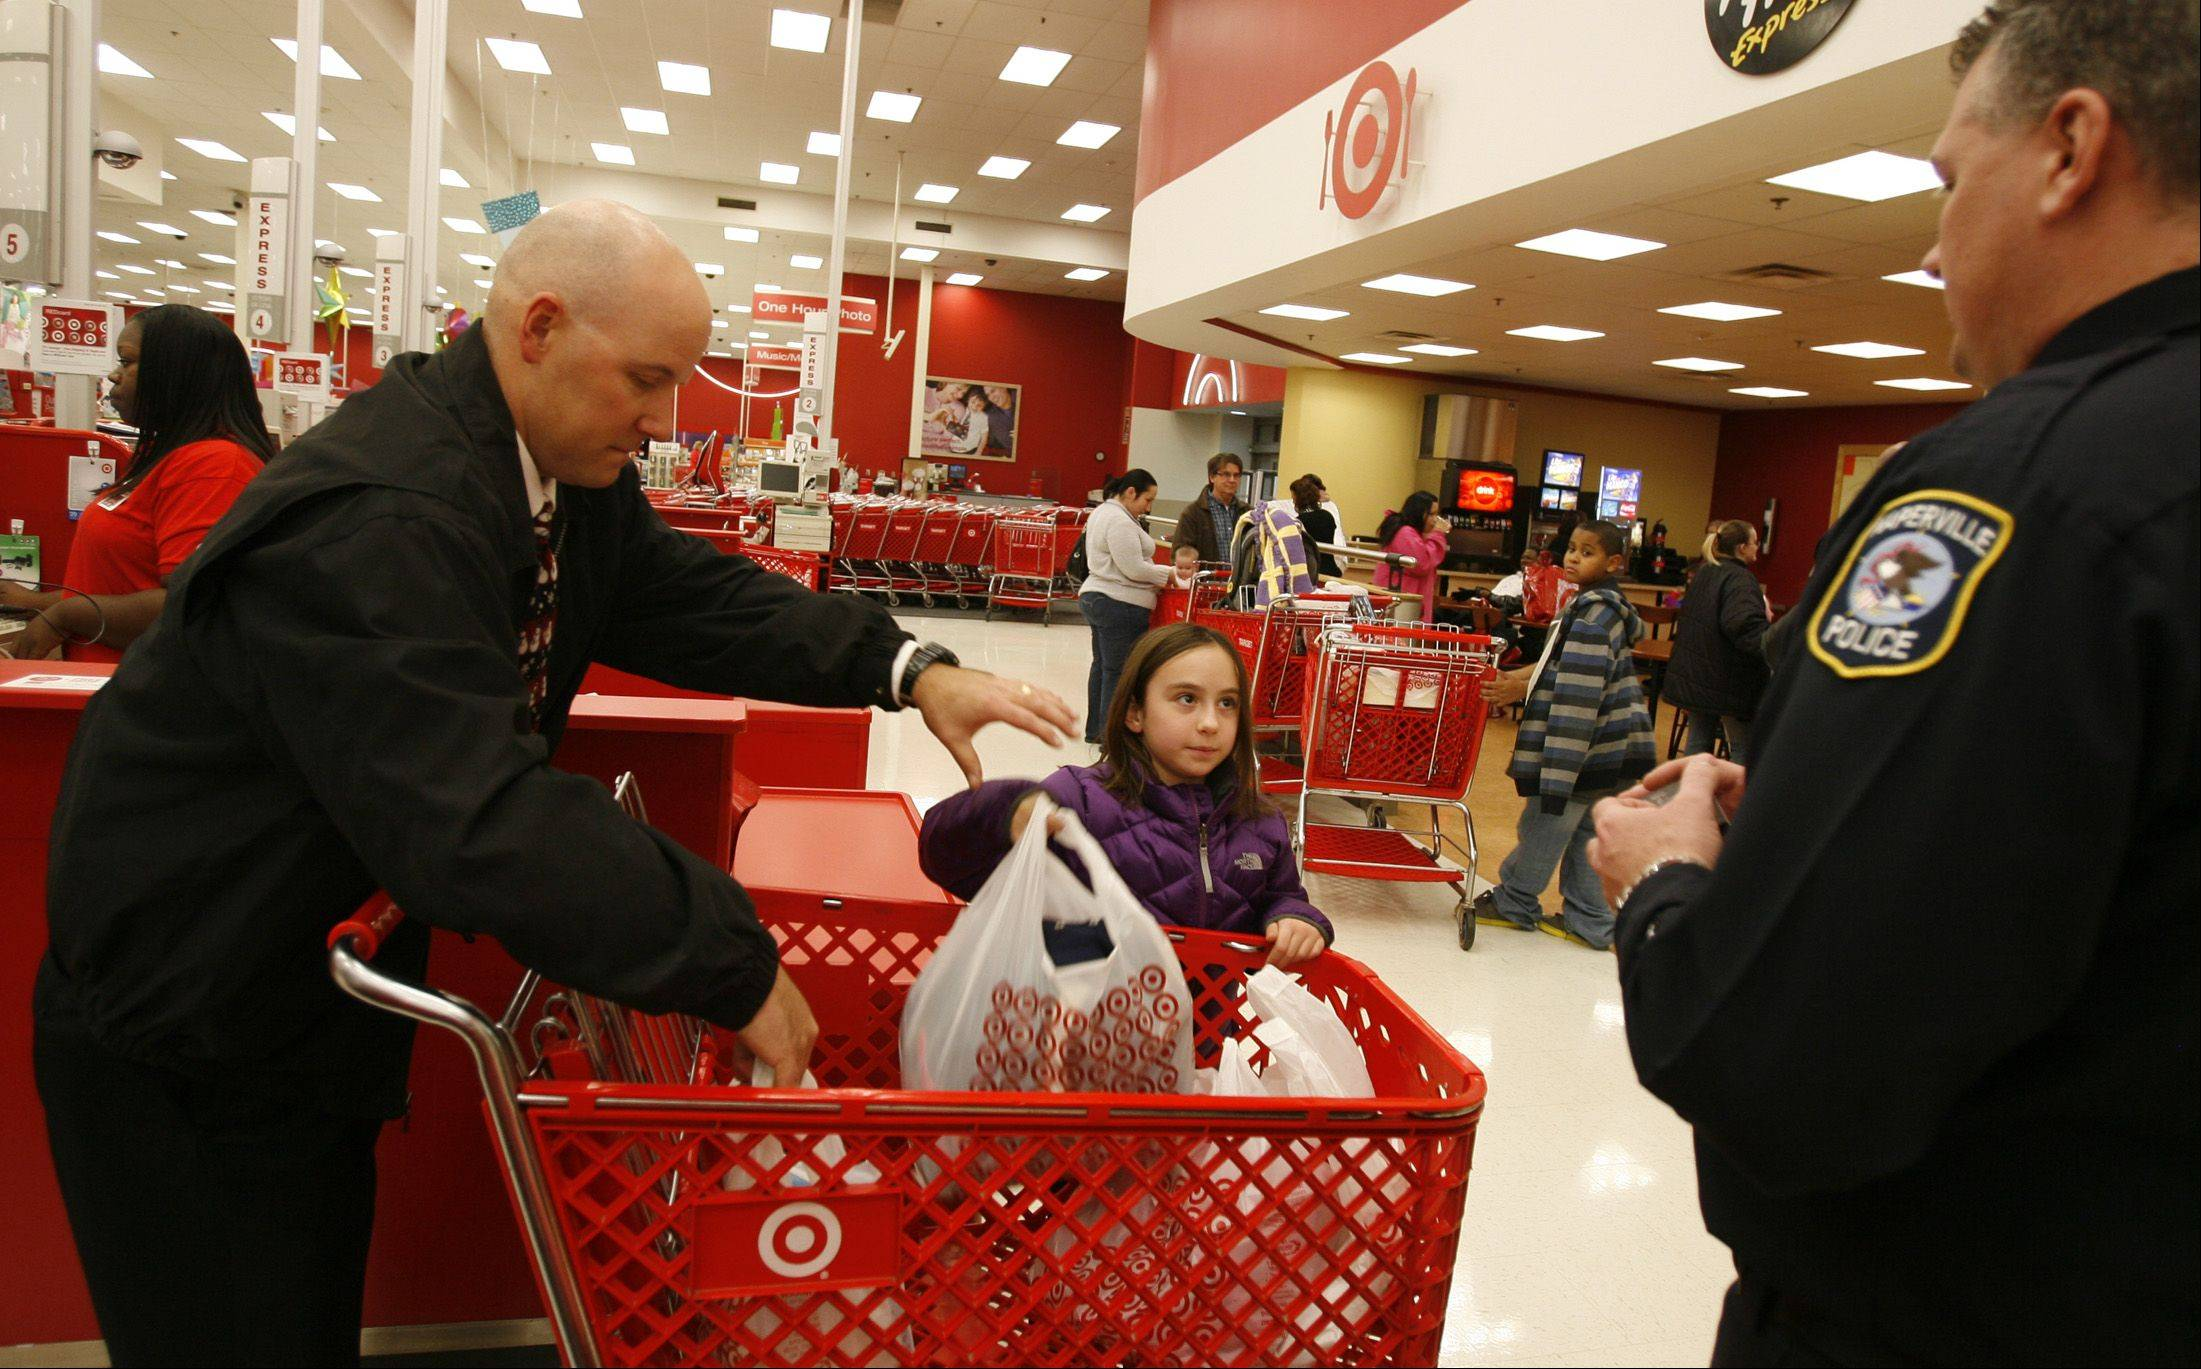 Marilyn Siwek, 8, of Naperville, checks out with Naperville Police officer Paul Elliott, left, and Vince Clark, right, who help guide a shopping spree at a Naperville Target Store.